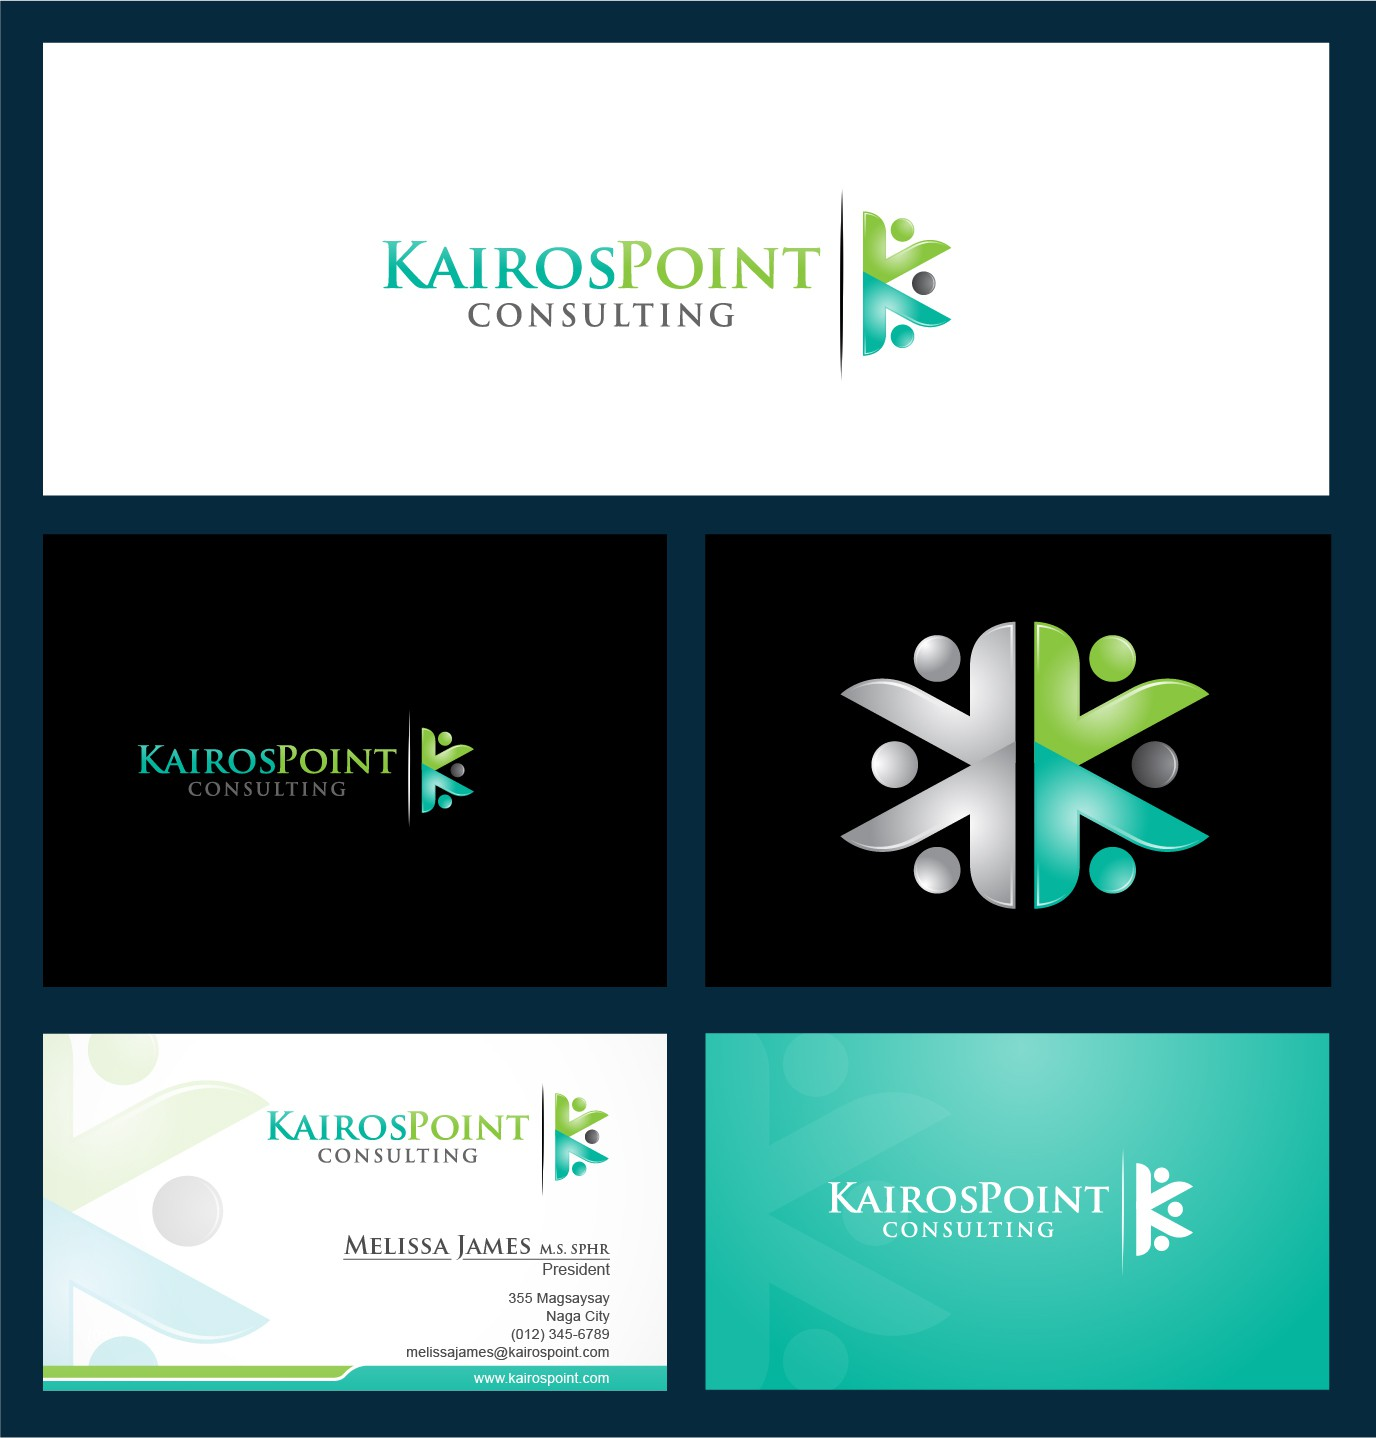 New logo and business card wanted for KairosPoint Consulting